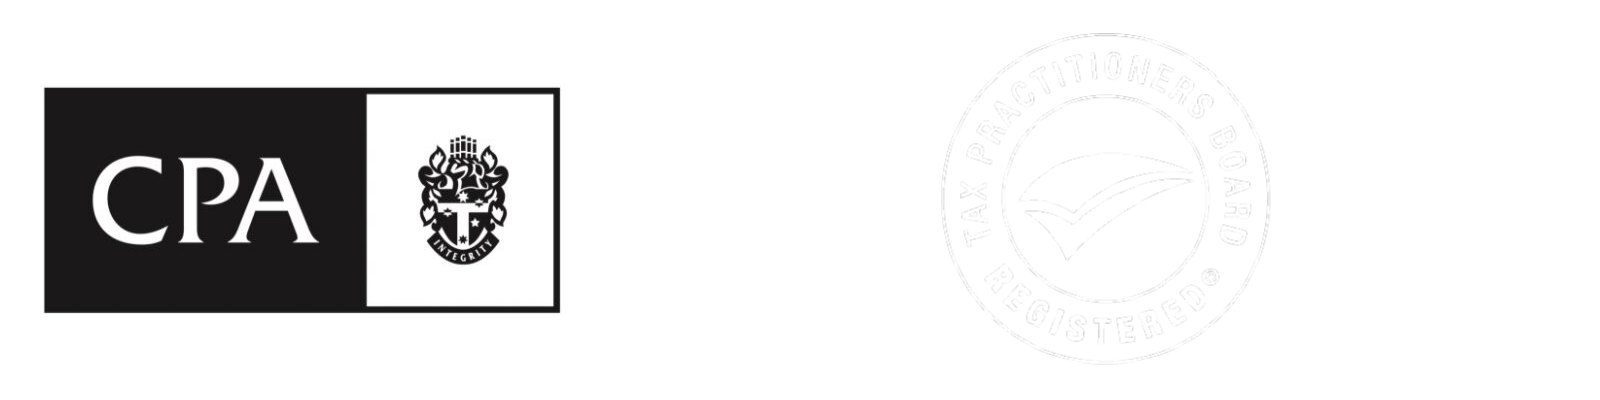 DriveTax CPA Accountants and Uber Tax Specialists